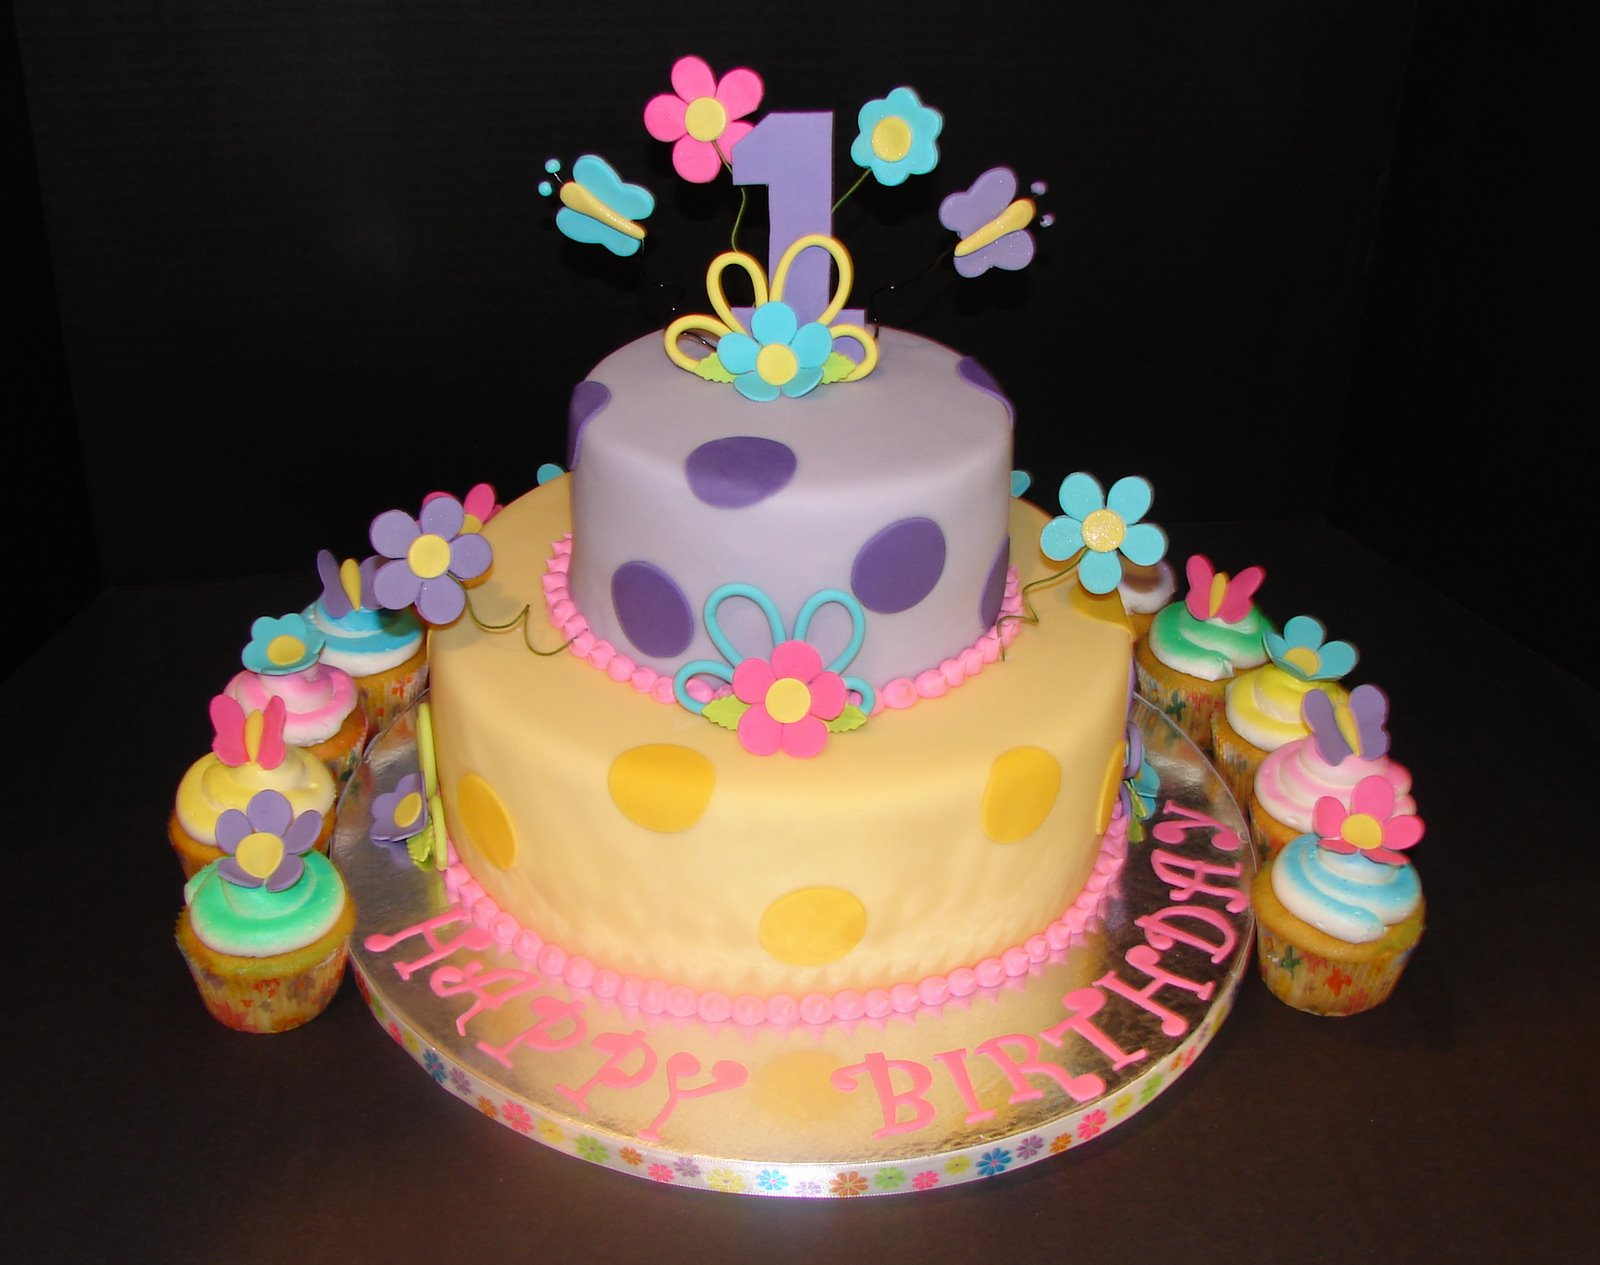 Birthday Cake Designs For Girlfriend : teenage girl birthday cakes Cake Photos